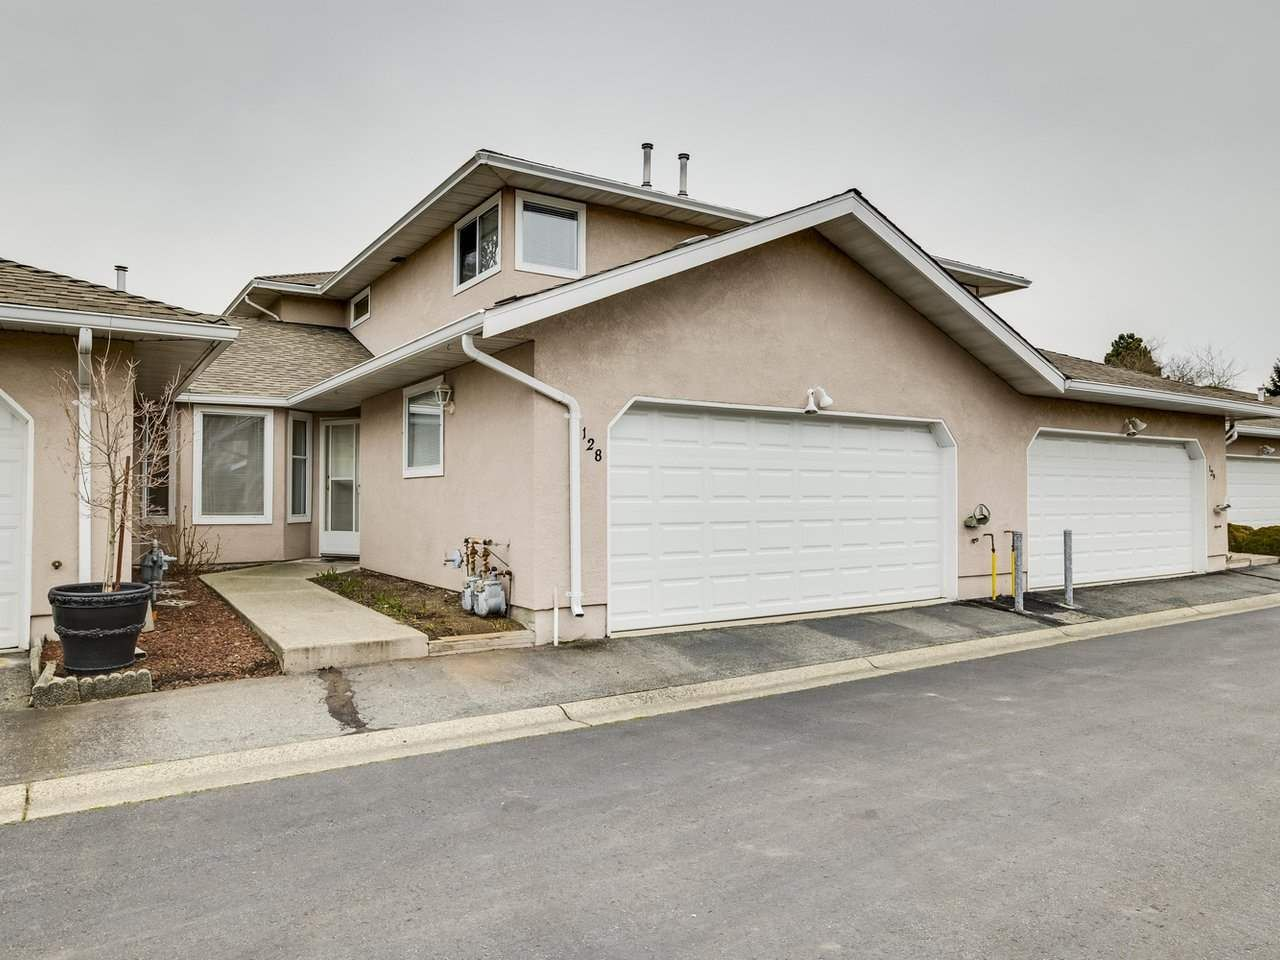 """Main Photo: 128 15501 89A Avenue in Surrey: Fleetwood Tynehead Townhouse for sale in """"Avondale"""" : MLS®# R2540692"""